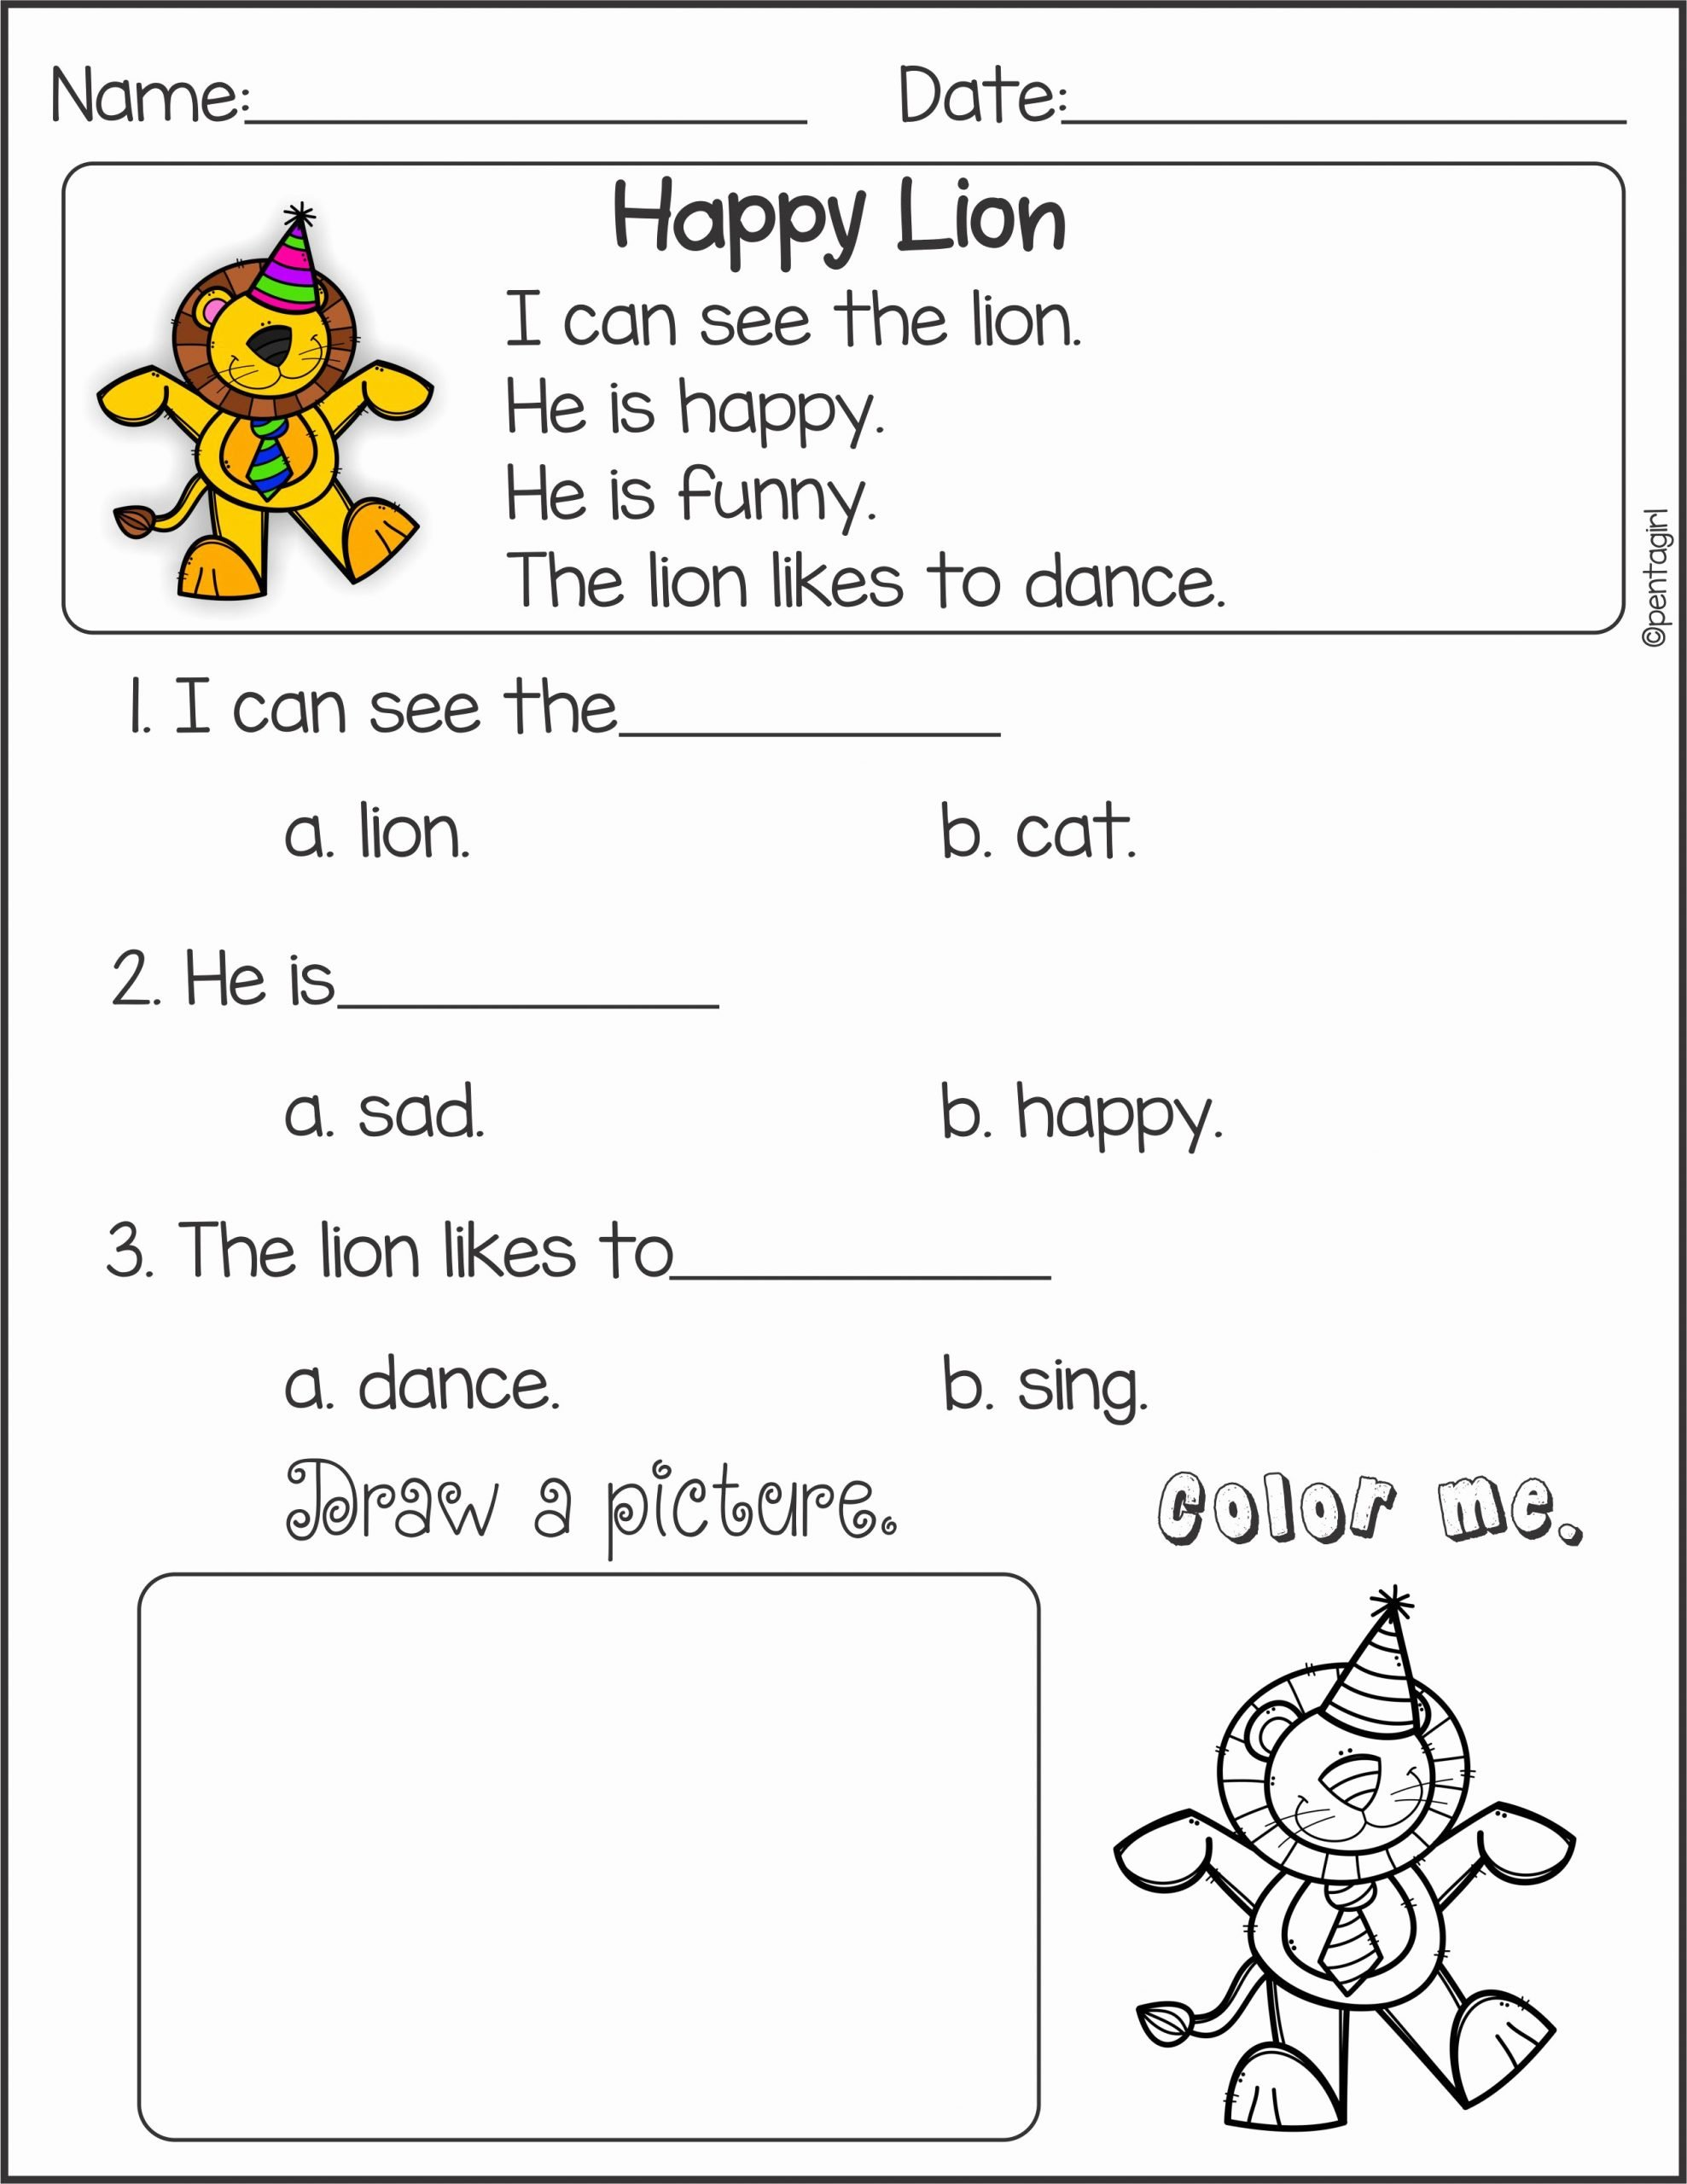 Worksheets for Preschoolers Reading Fresh Reading Prehension Worksheet Kindergarten Beautiful Kids